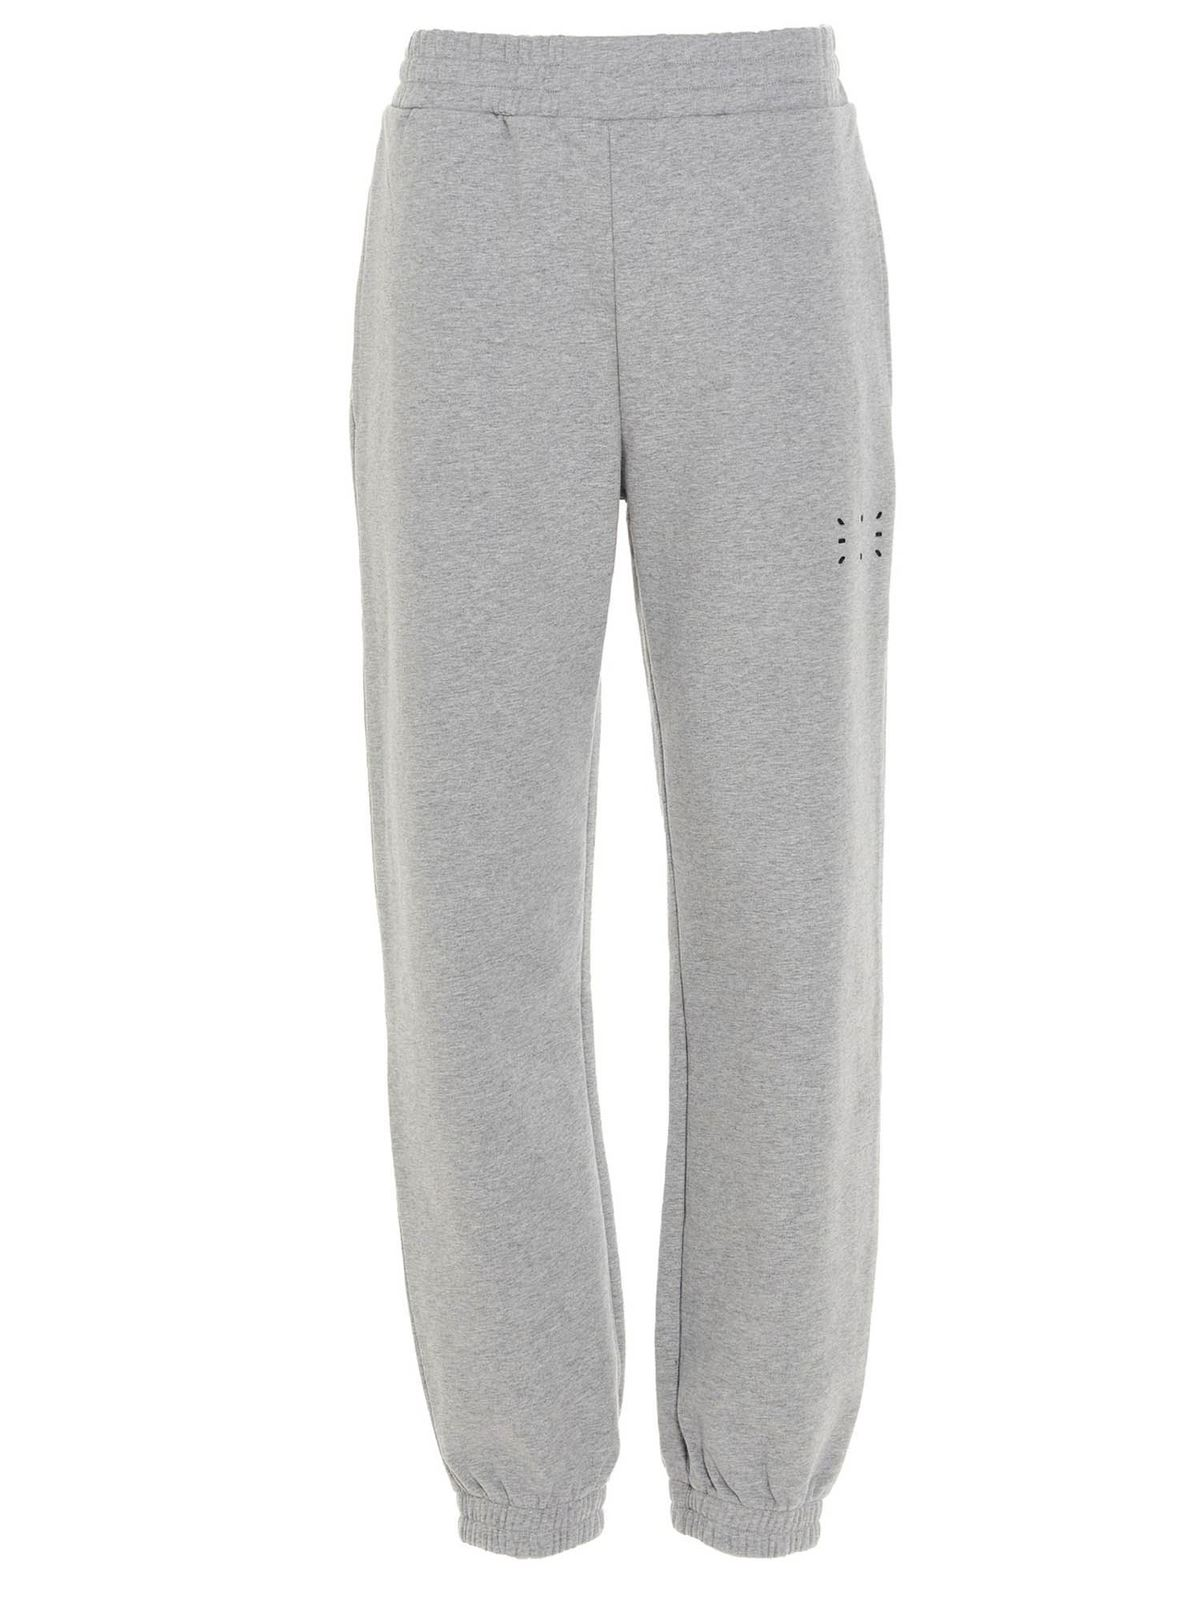 Mcq By Alexander Mcqueen Cottons RUBBERISED LOGO JOGGERS IN GREY